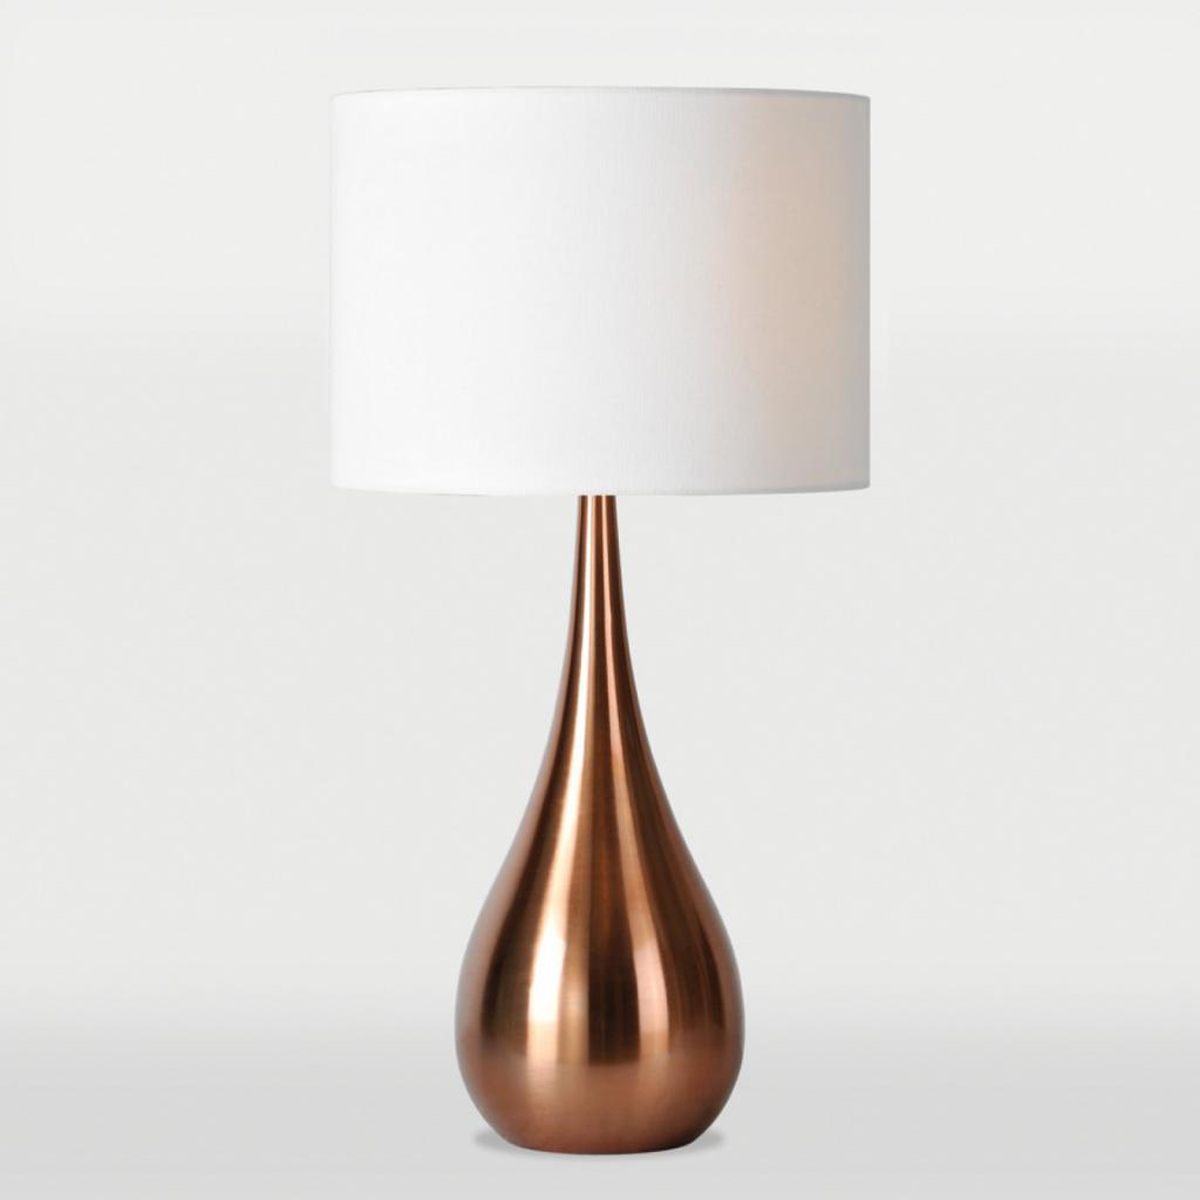 Ren-Wil Pandora Table Lamp - Copper